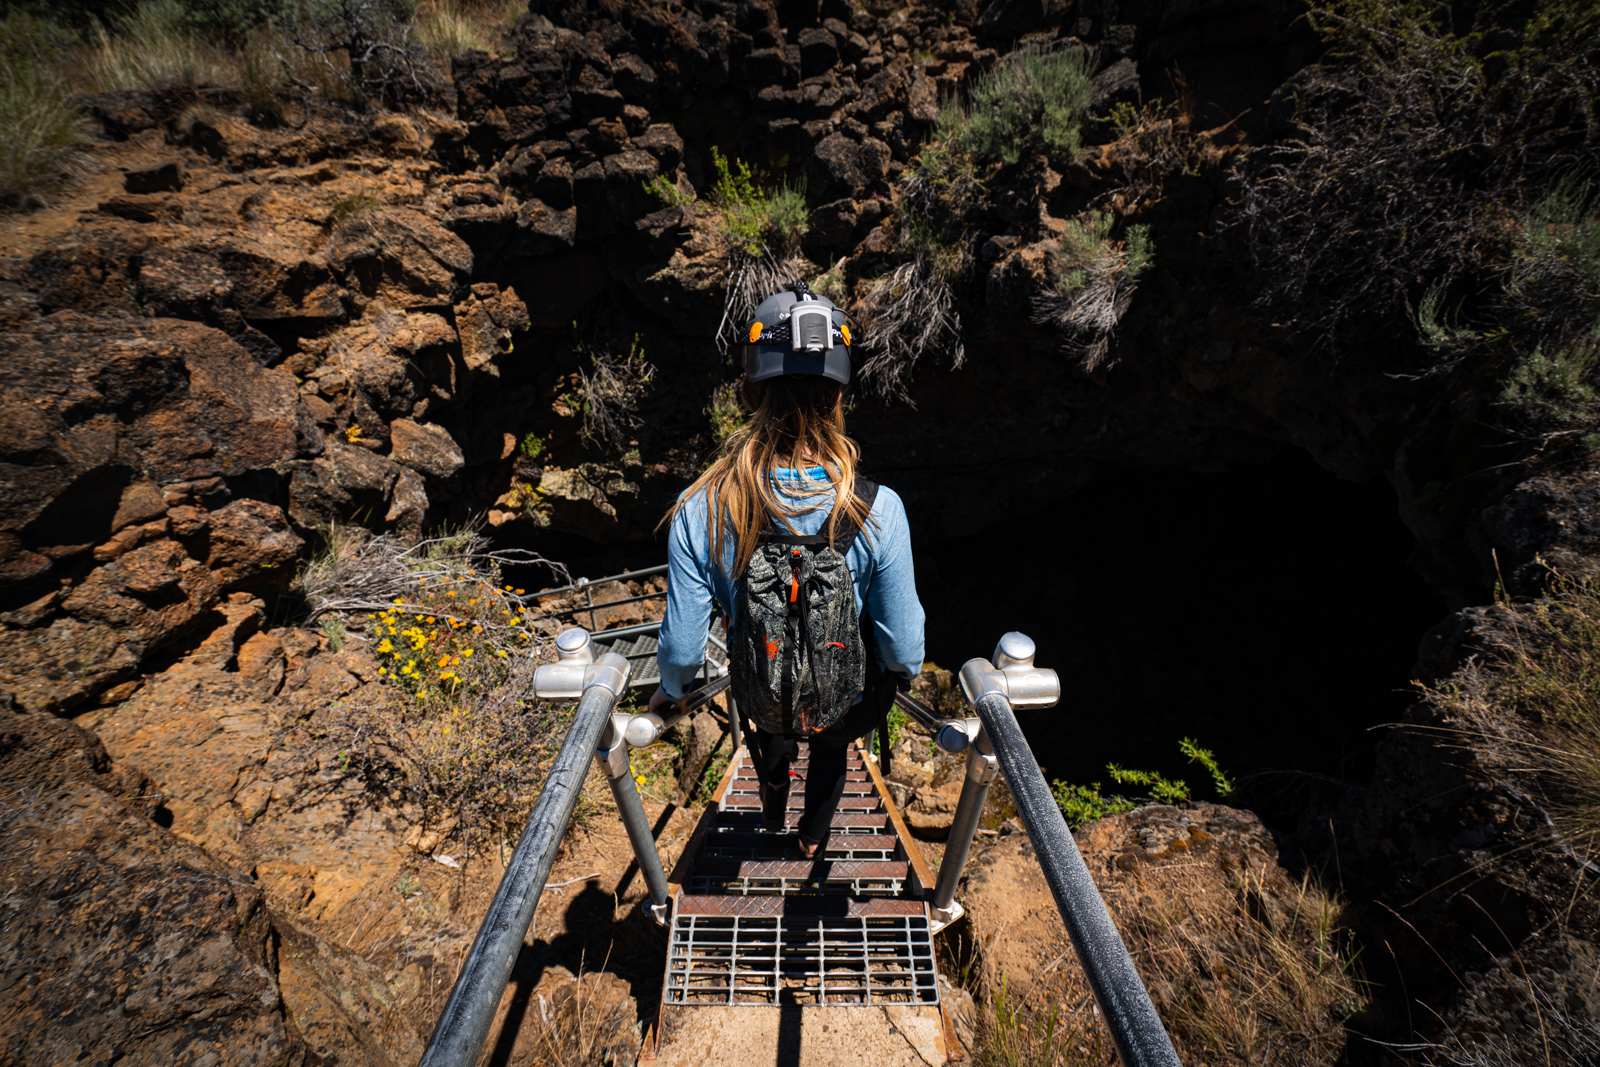 Discover Siskiyou Podcast featuring: Caving at Lava Beds National Monument - Tulelake, CA